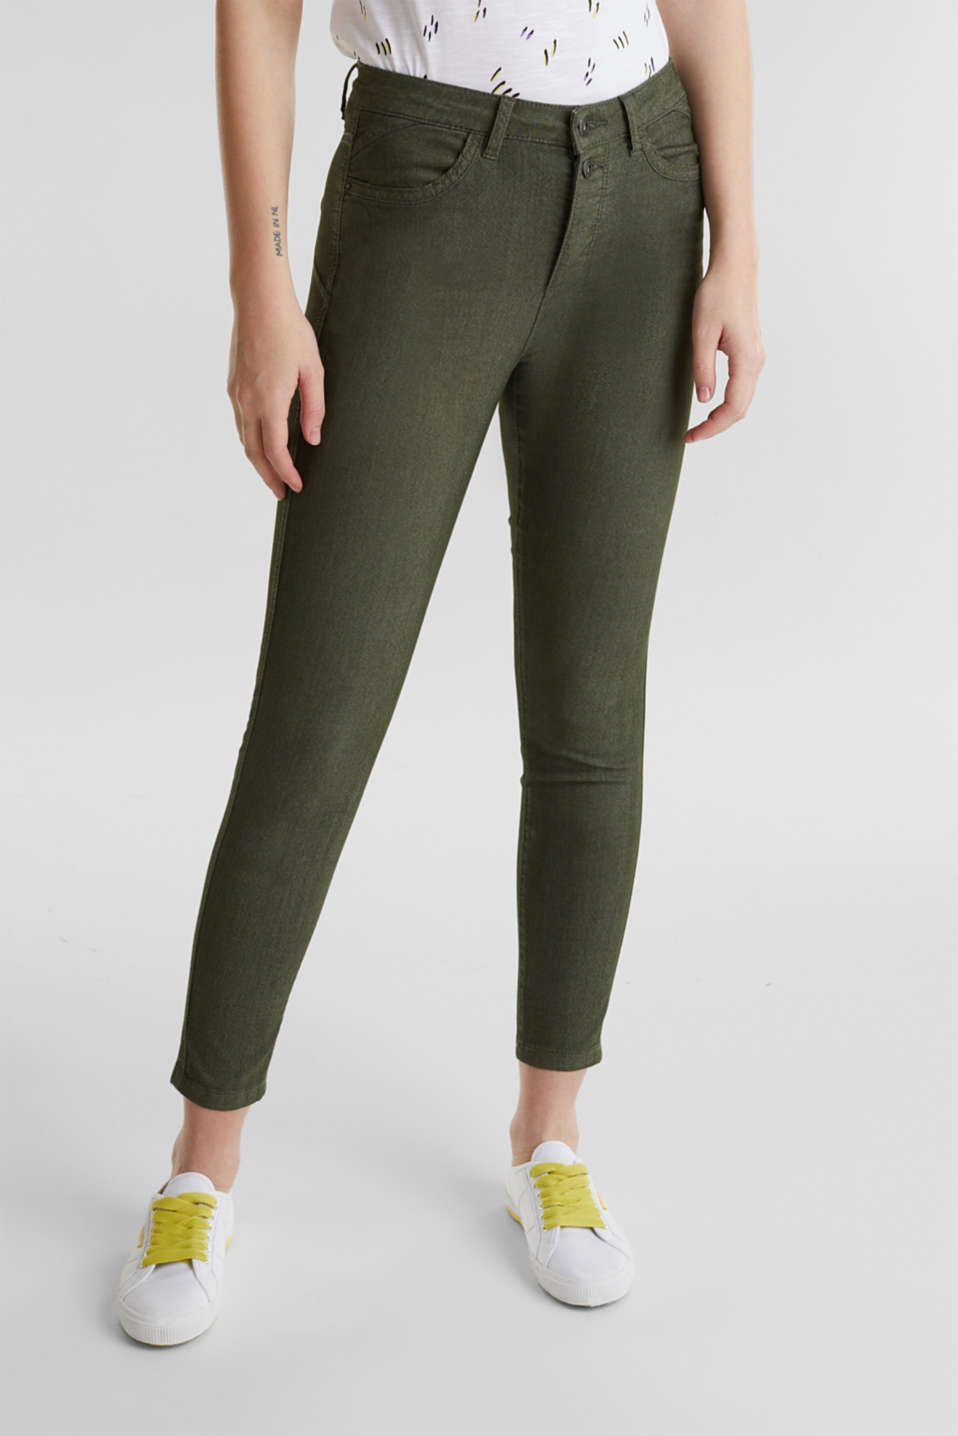 Ankle-length stretch trousers, KHAKI GREEN, detail image number 6